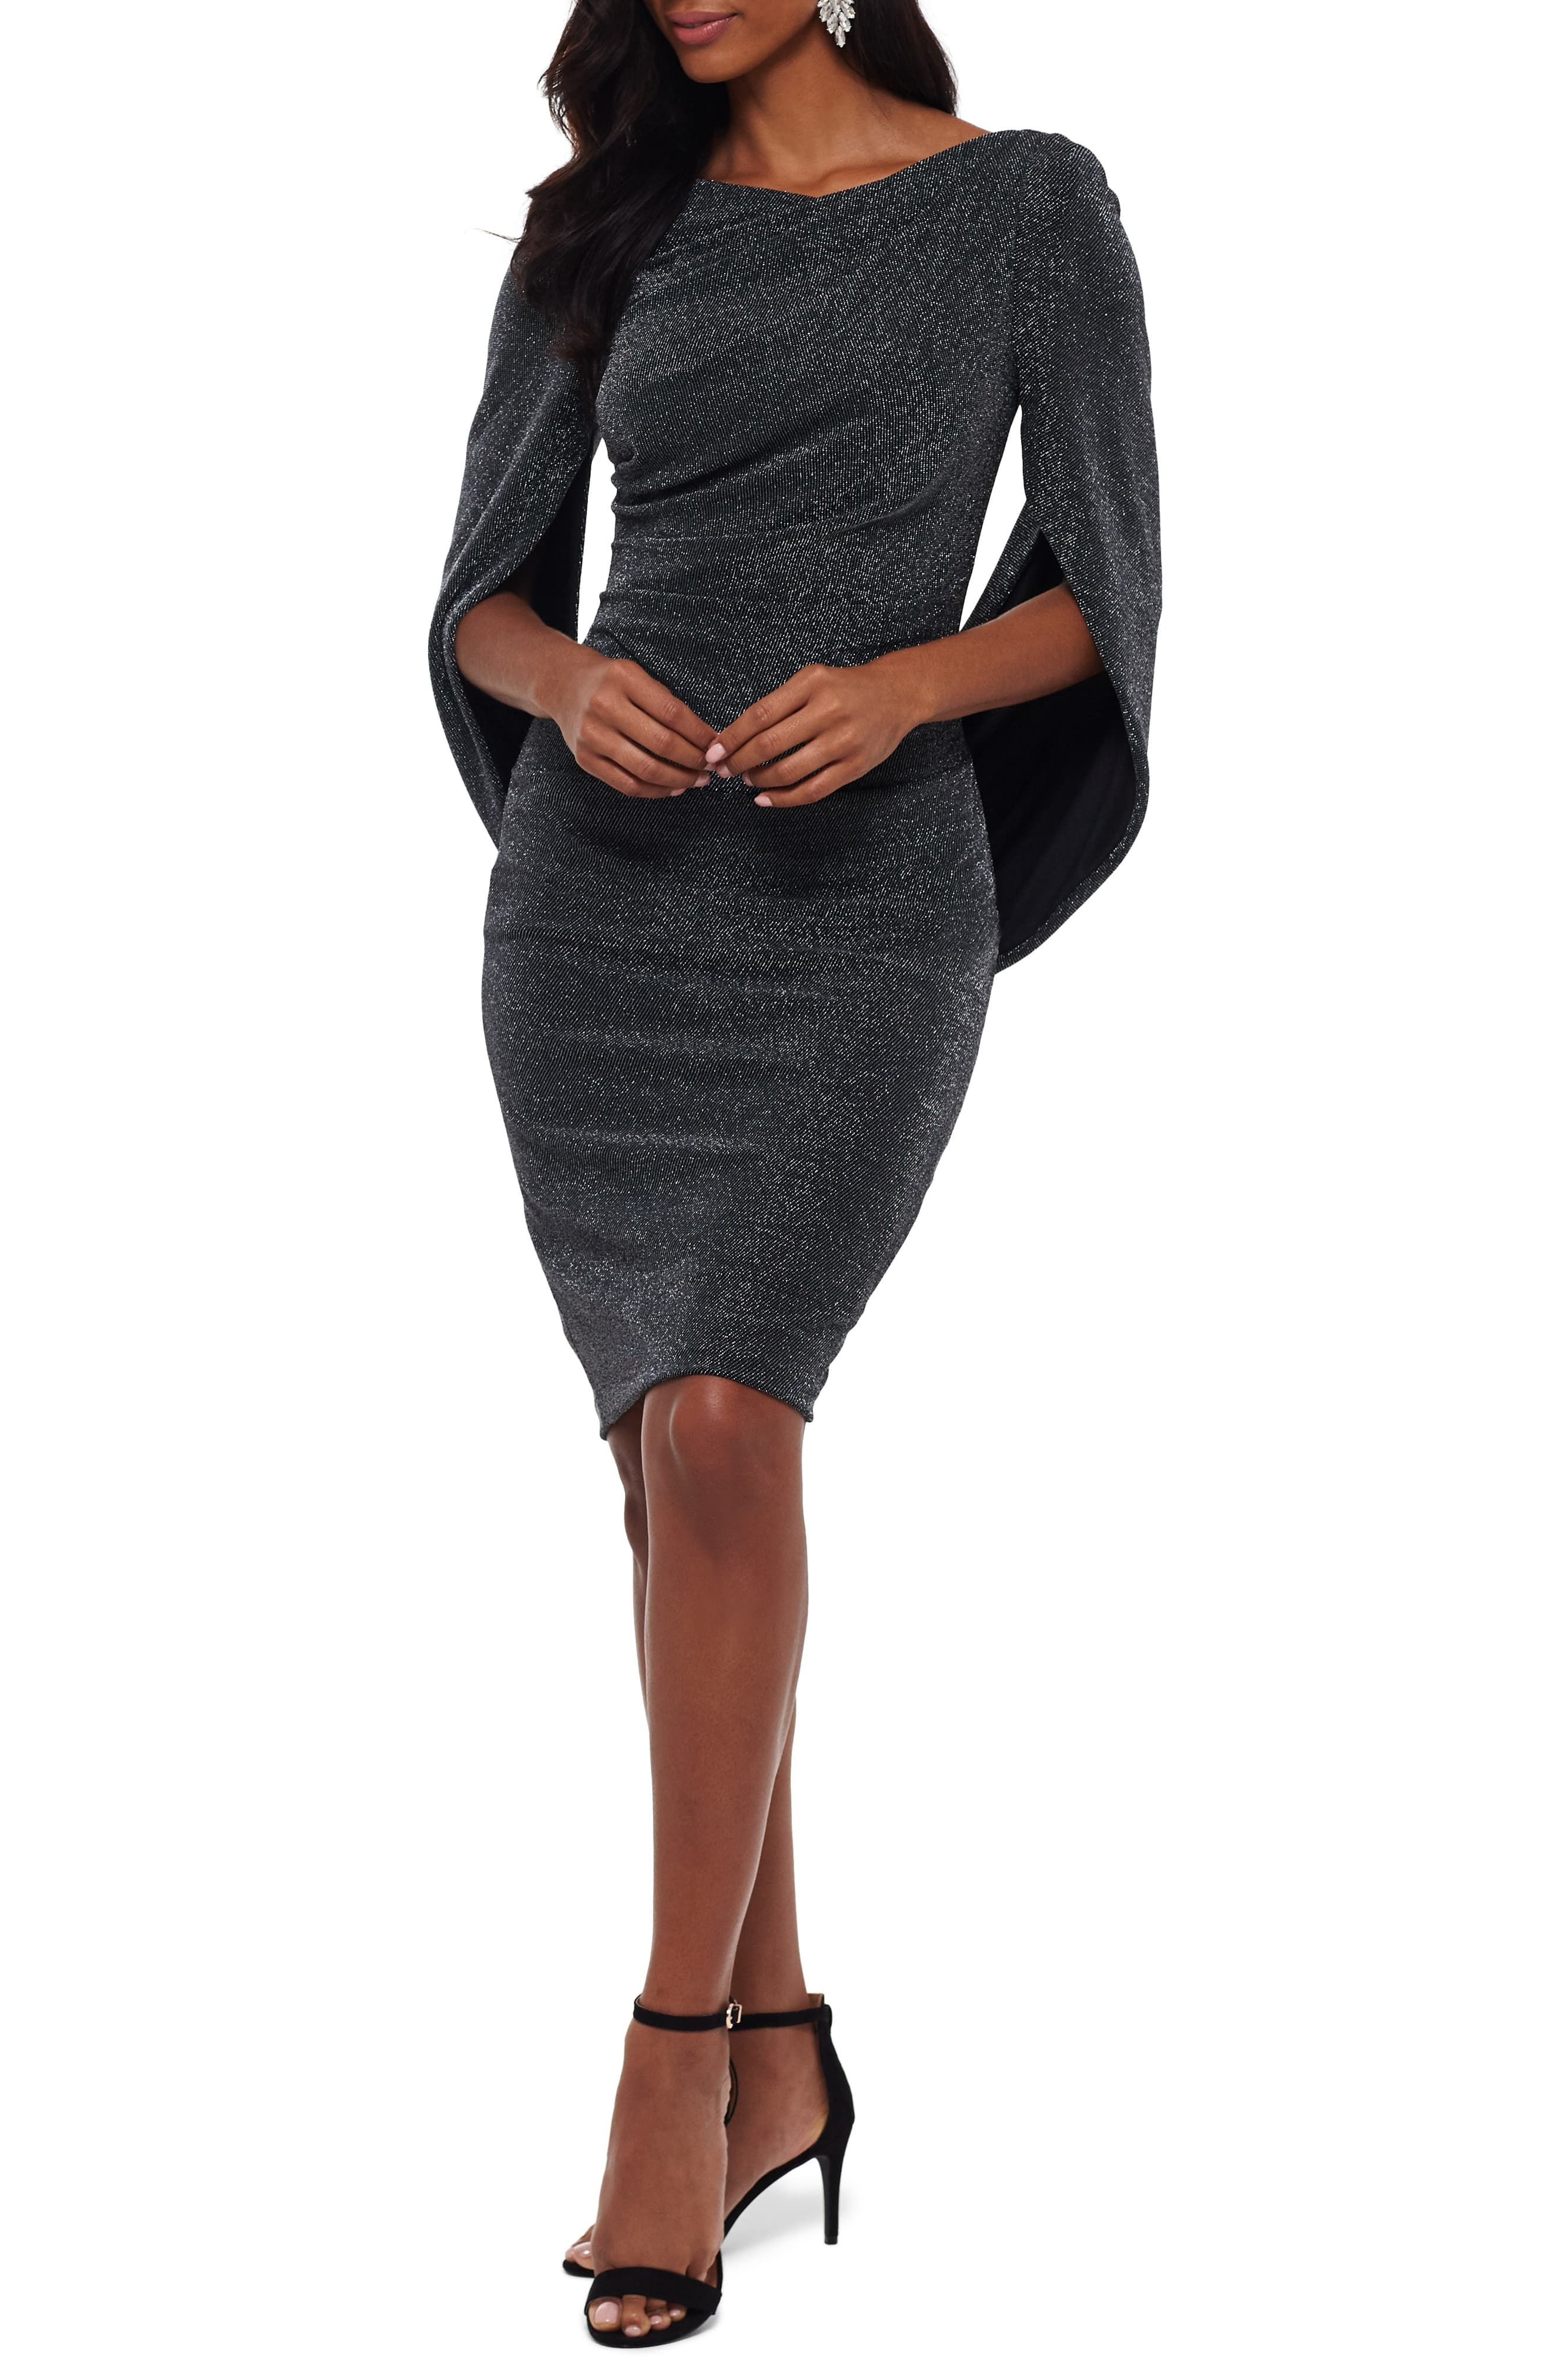 winter dresses to wear to a wedding classy,winter dresses dressy,cocktail dress,